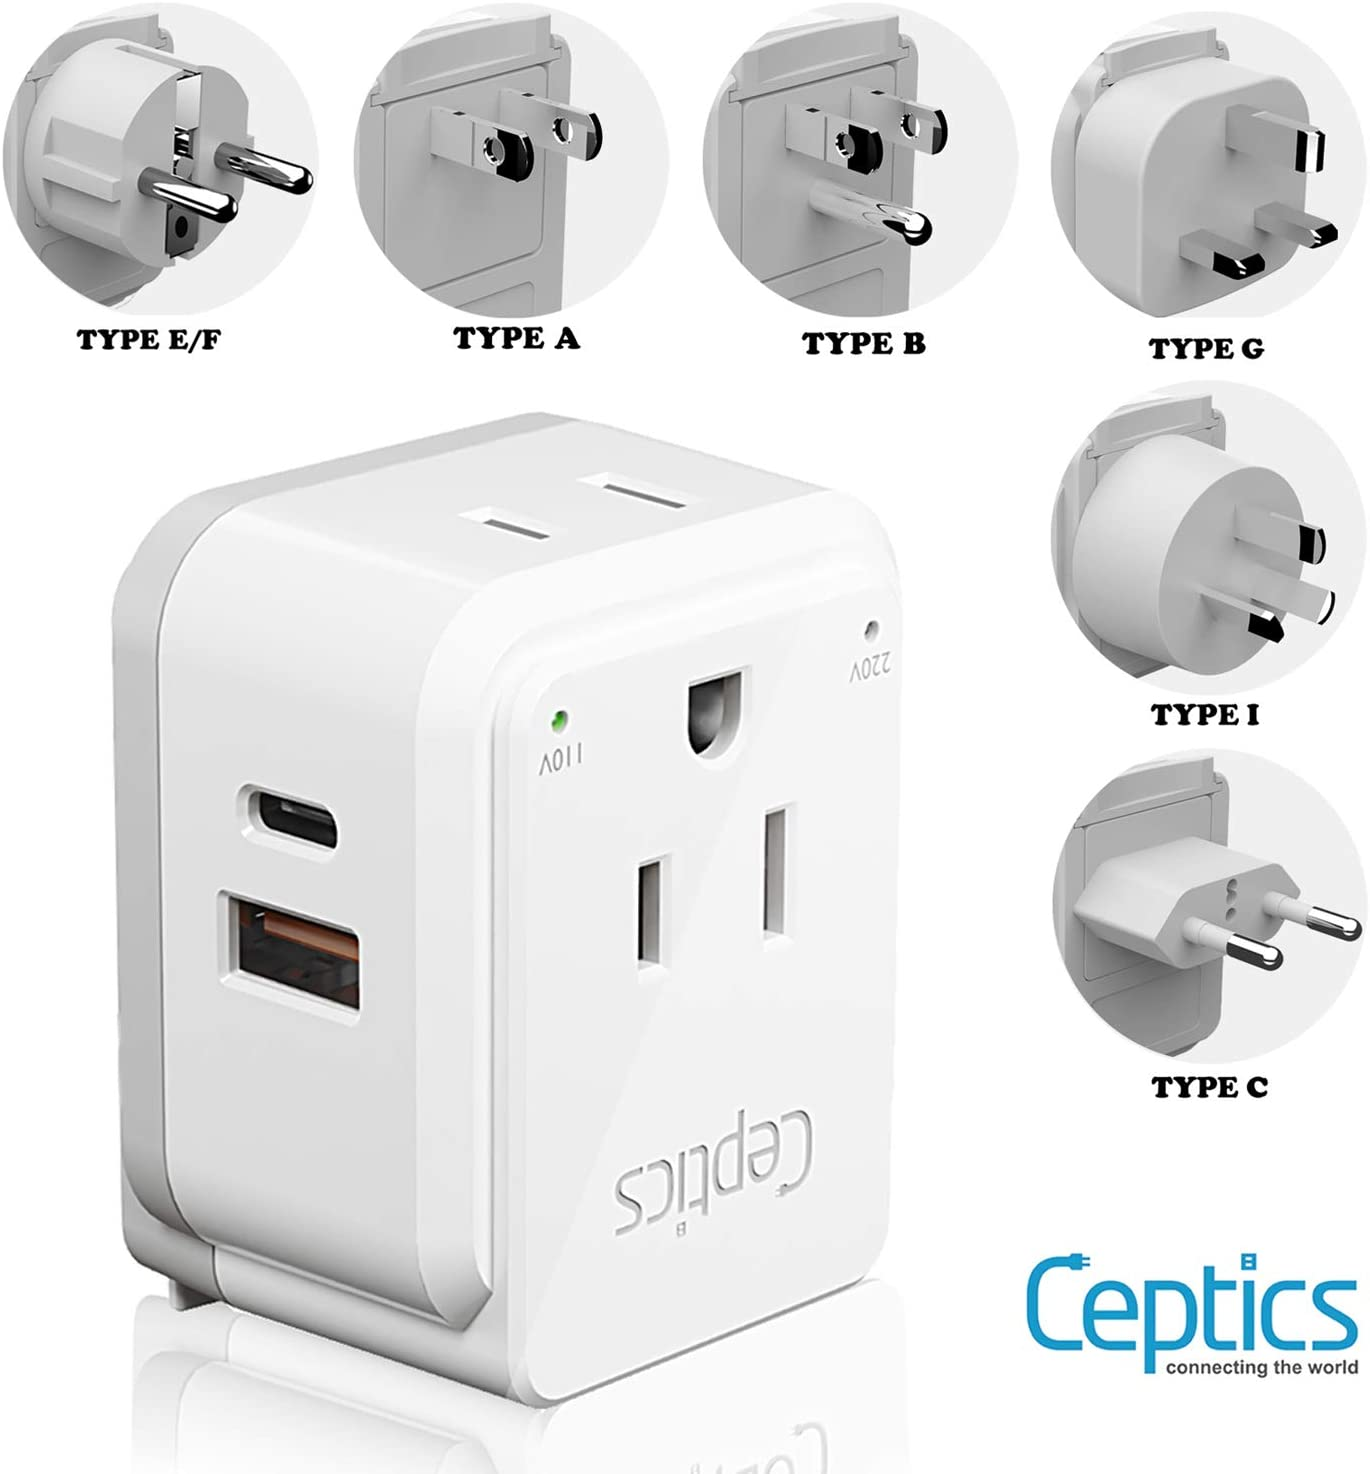 World Power Plug Adapter Travel Set Ceptics, Safe Dual USB & USB-C 3.1A 2 USA Outlet Compact & Powerful - Use in Europe, Asia, Australia, Japan - Includes Type A, B, C, E/F, G, I SWadAPt Attachments